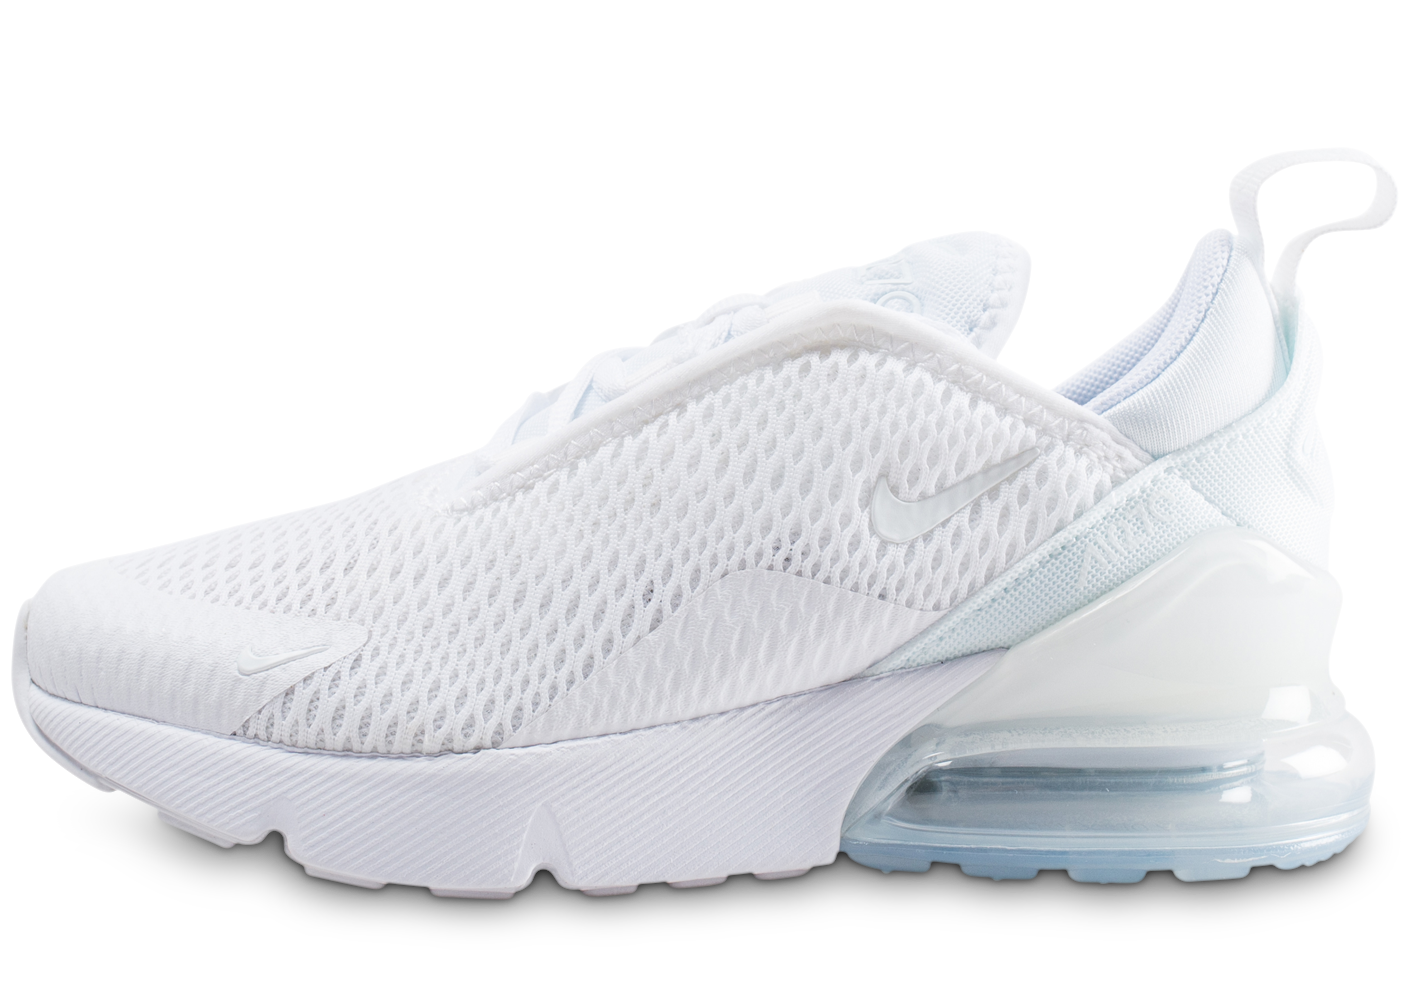 new products 08946 df615 Nike air max 270 blanche et argent enfant.